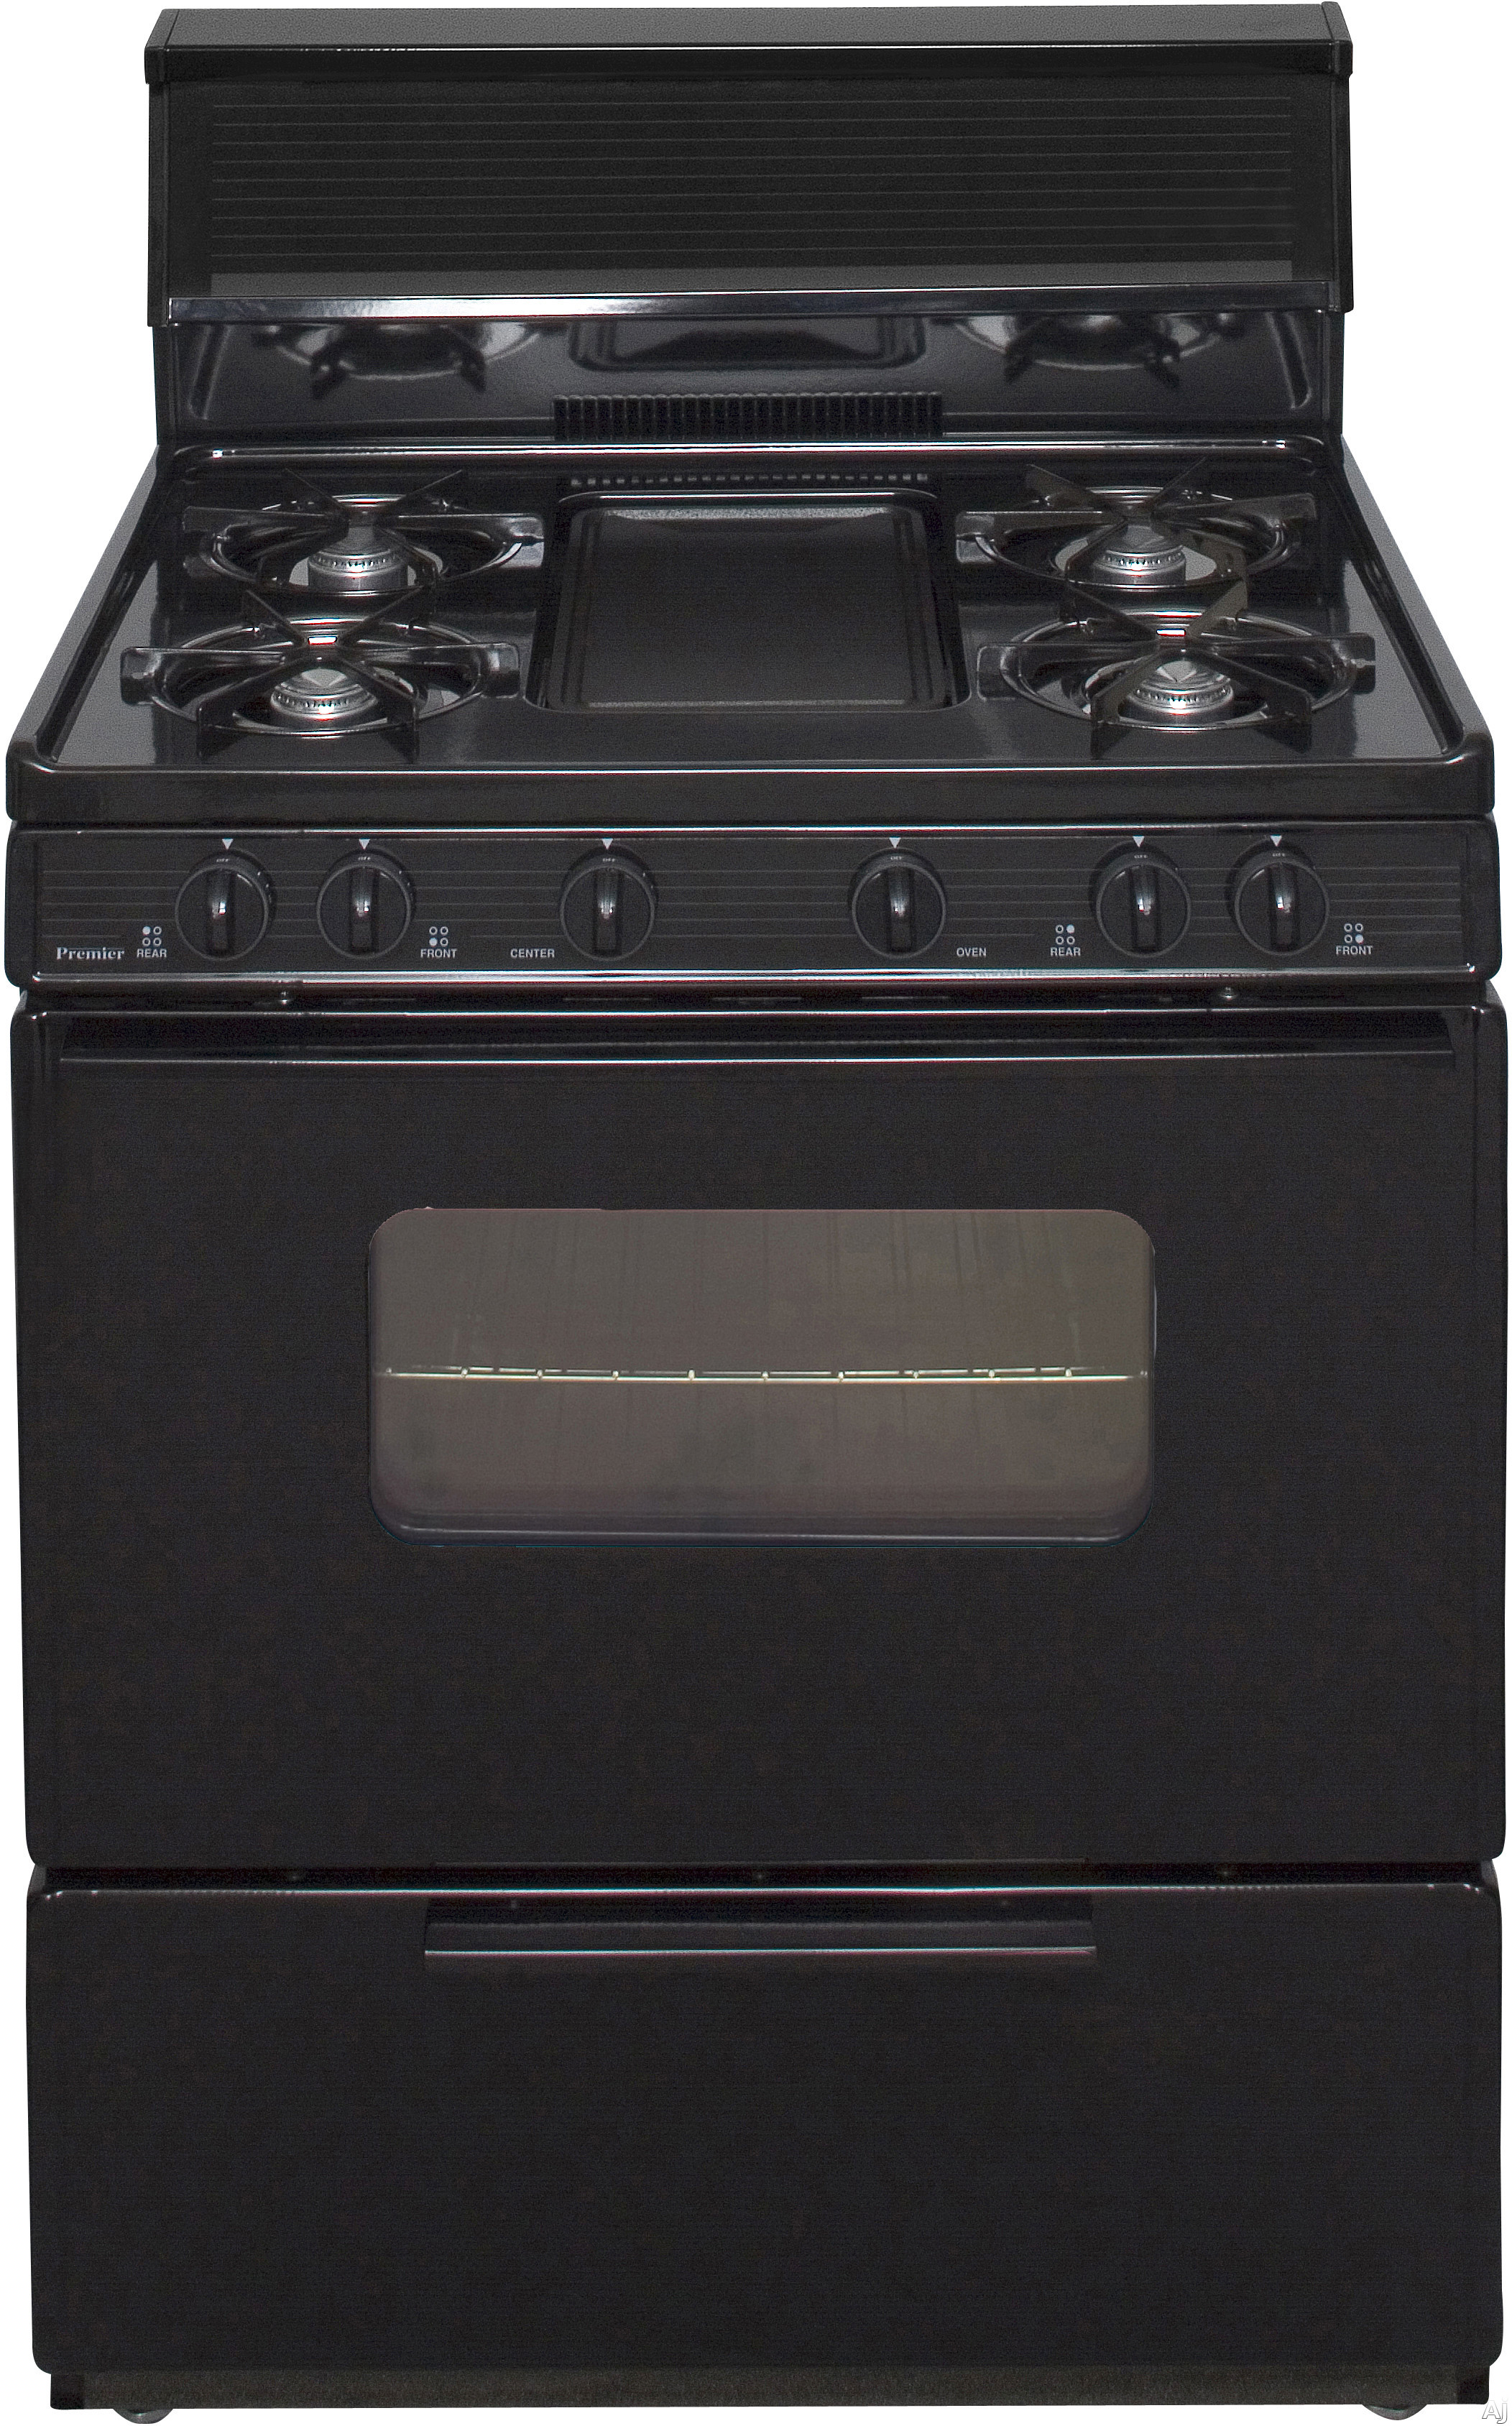 Stove With Griddle ~ Image disclaimer